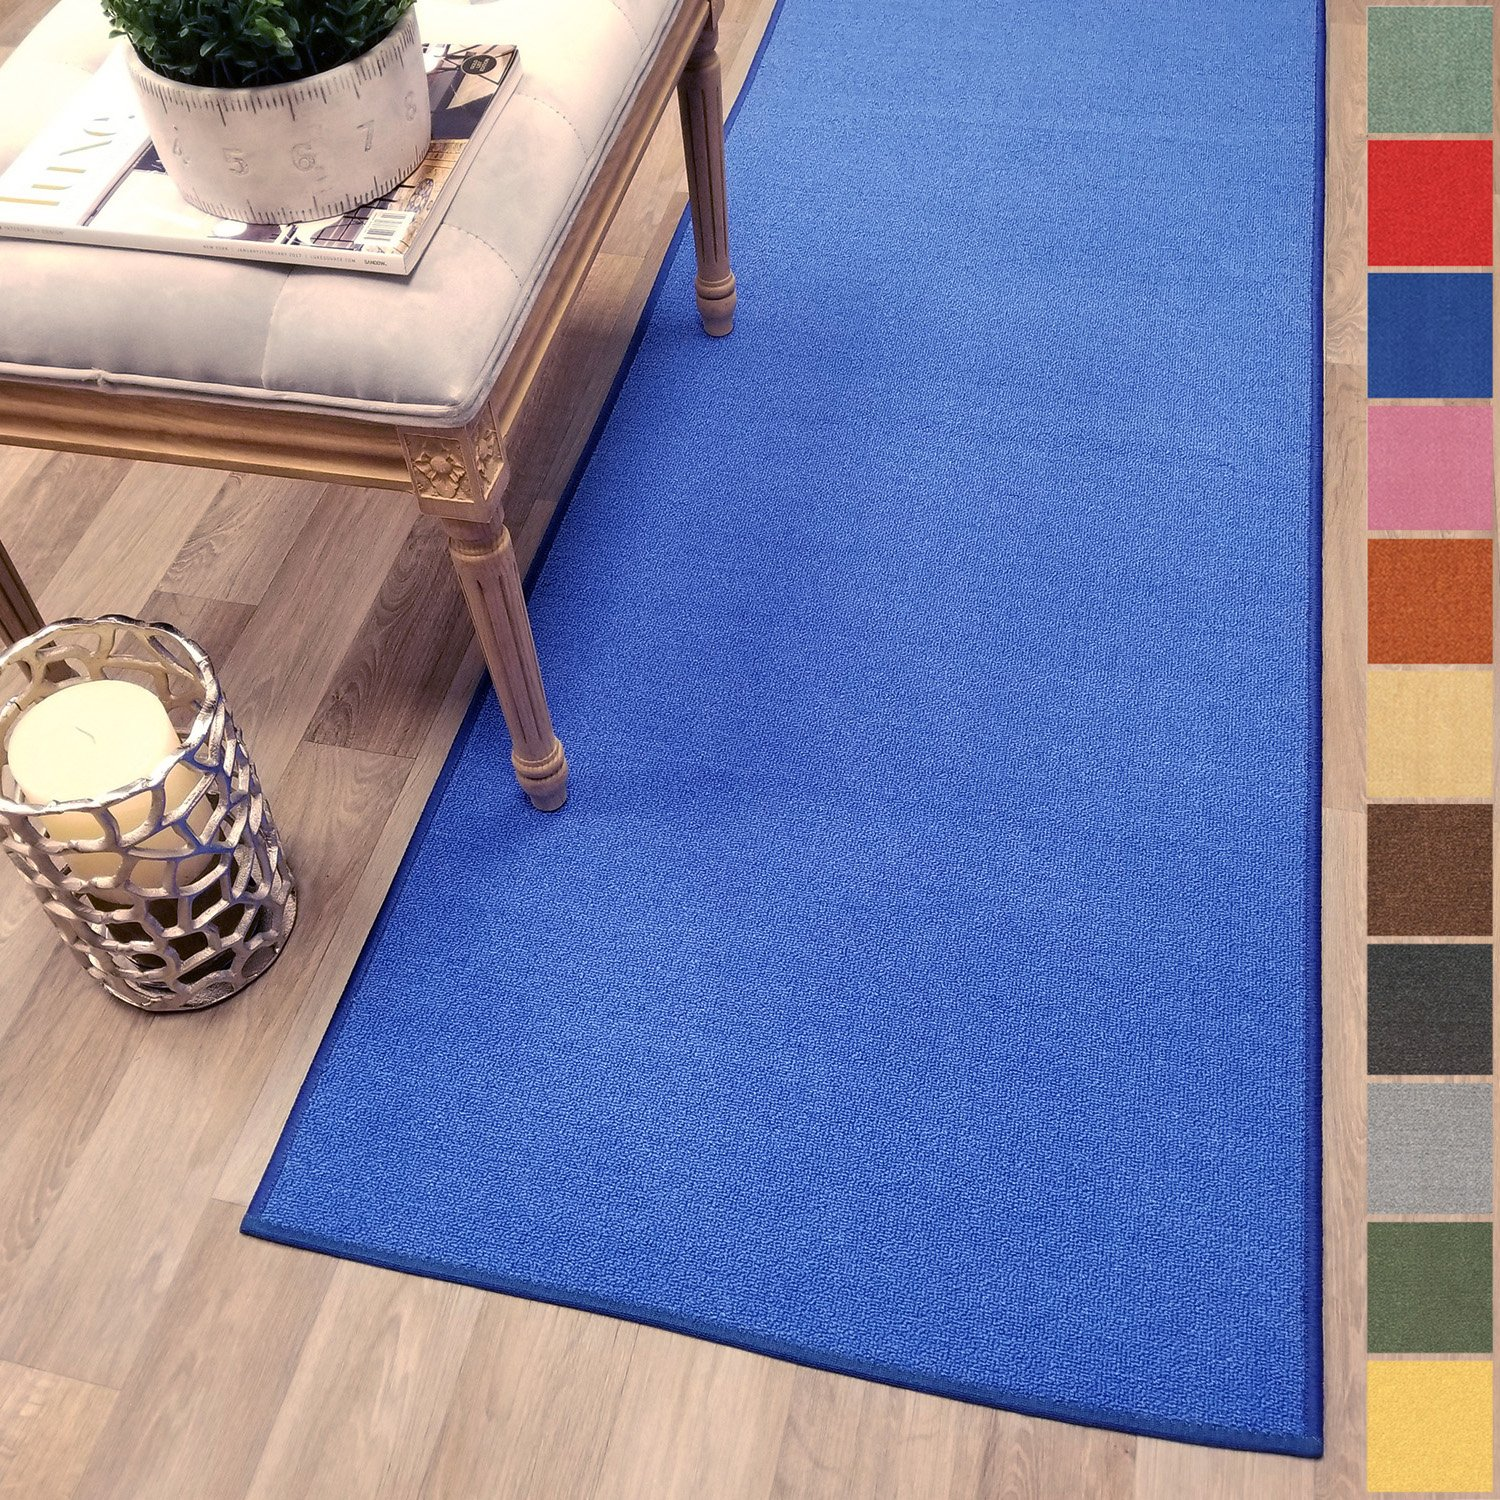 Kapaqua Custom Size BLUE Solid Plain Rubber Backed Non-Slip Hallway Stair Runner Rug Carpet 22 inch Wide Choose Your Length 22in X 3ft